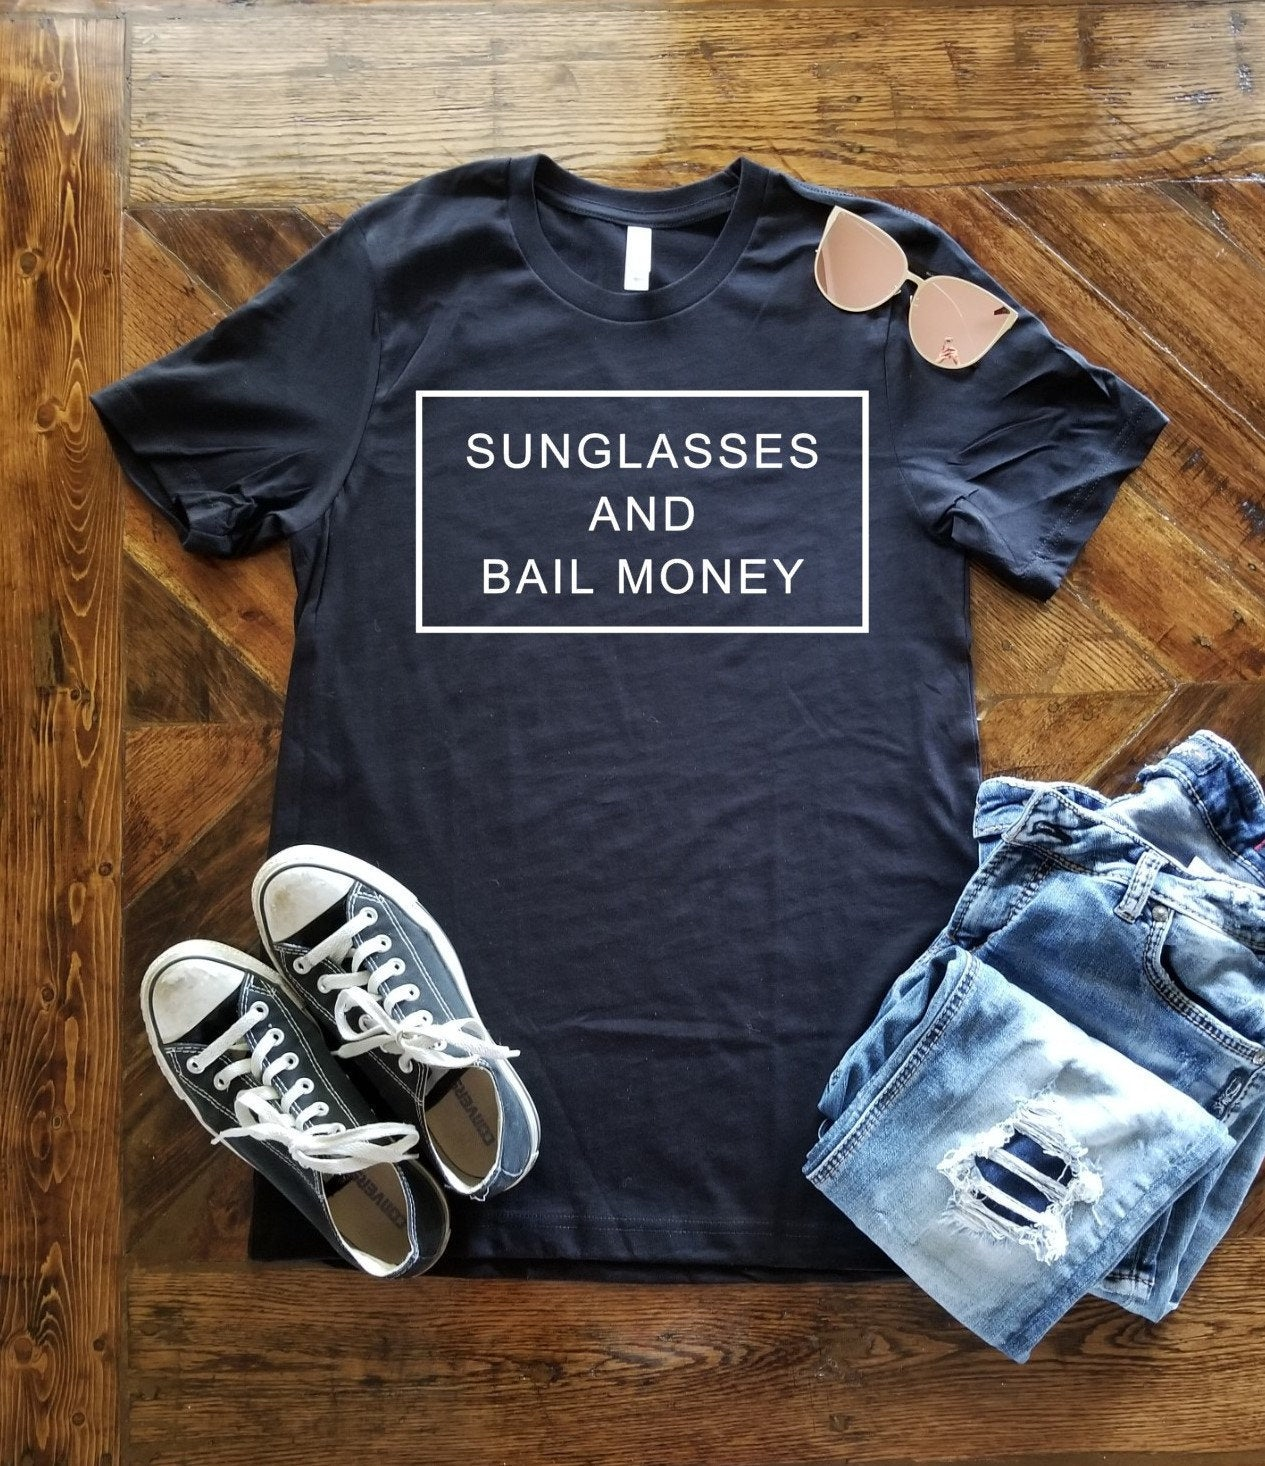 Sunglasses and Bail Money